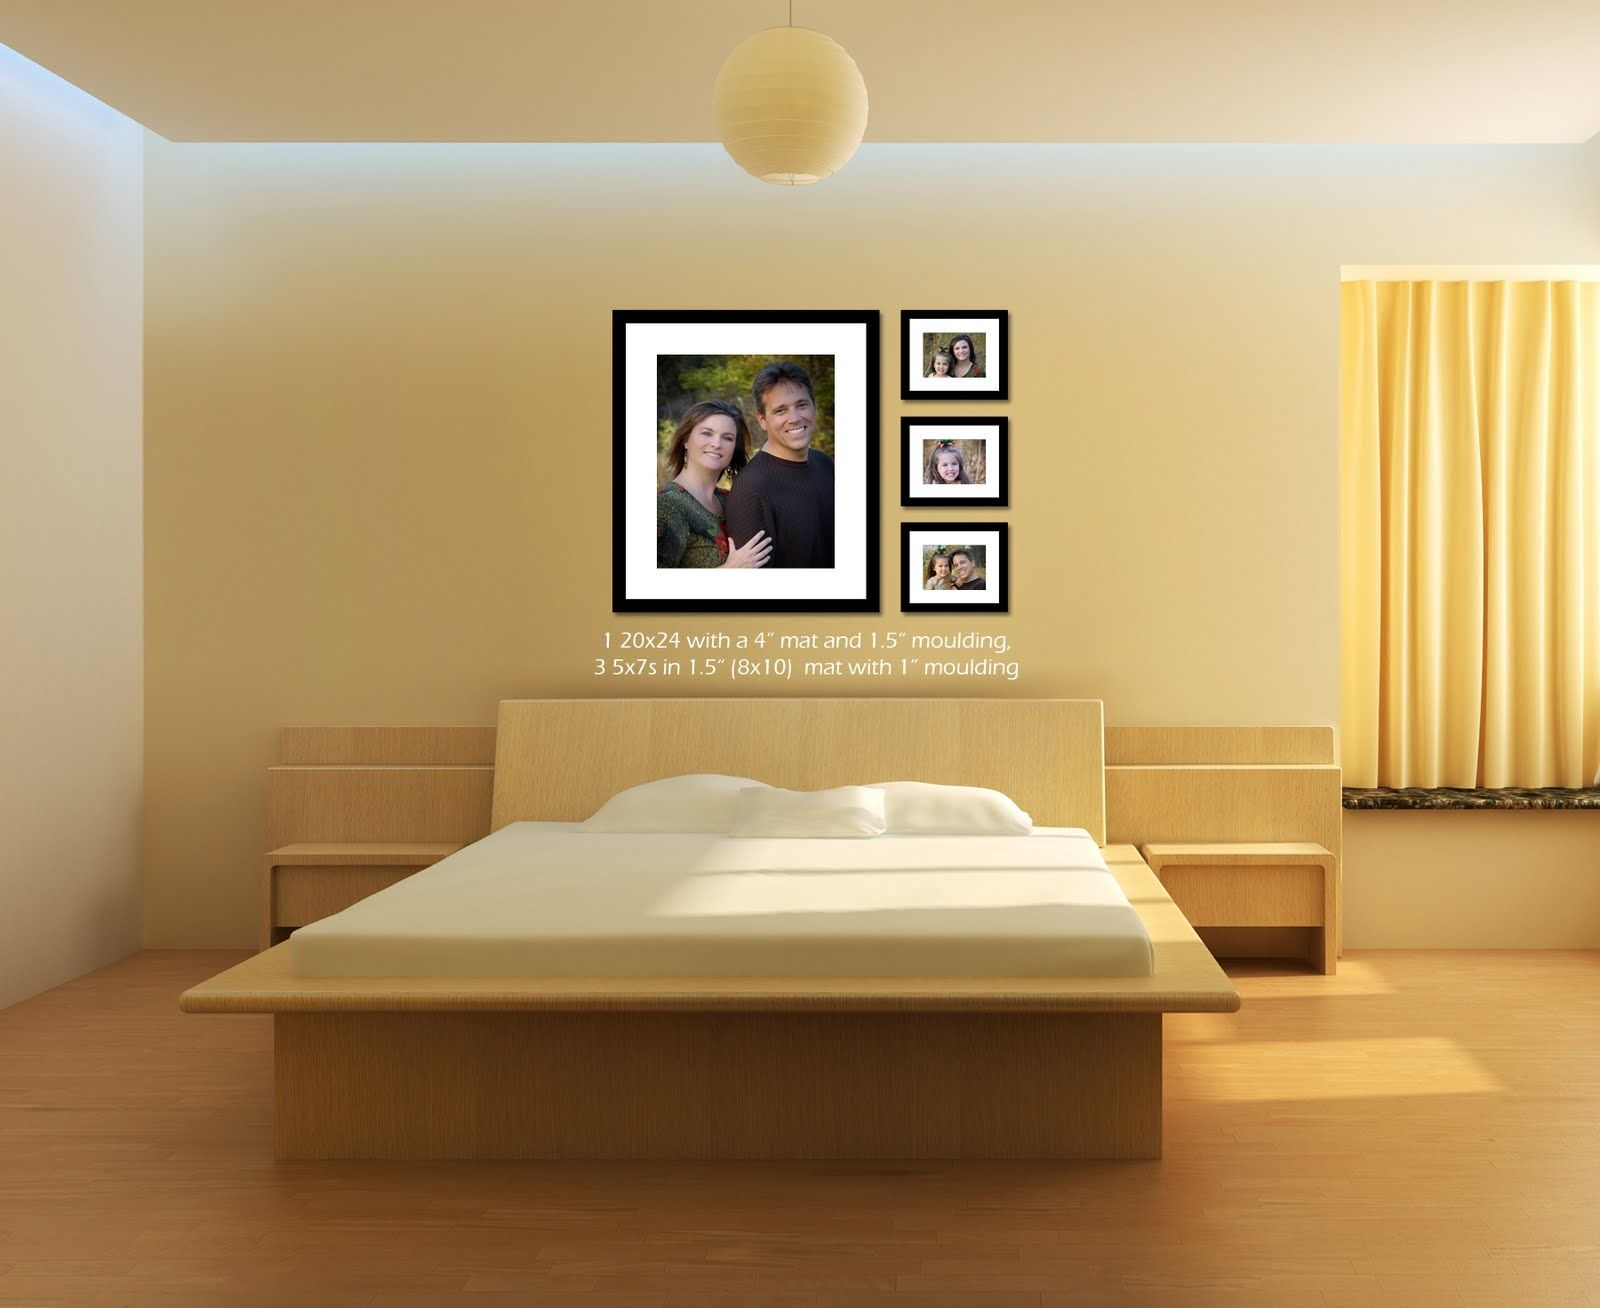 Ideas To Decorate Bedroom Walls With Pictures | Bedroom Design ...